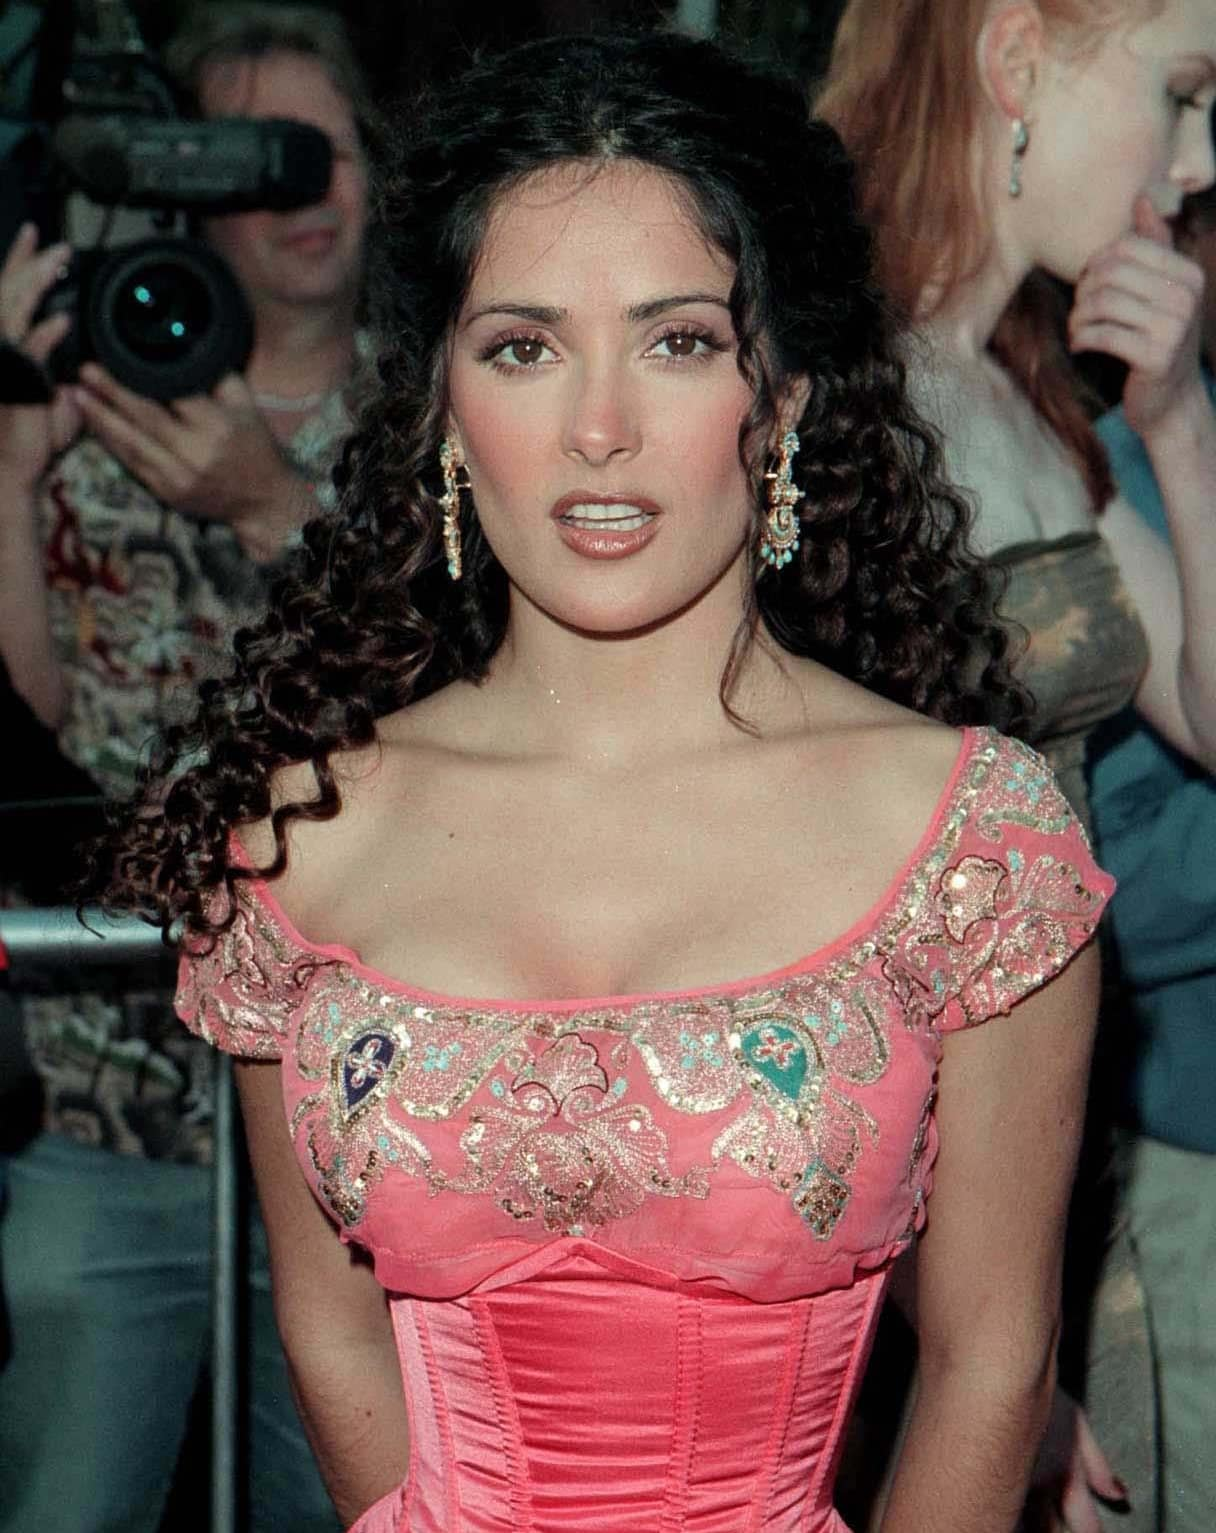 Salma Hayek is considered one of the sexiest celebrities in Hollywood thanks to her breast size